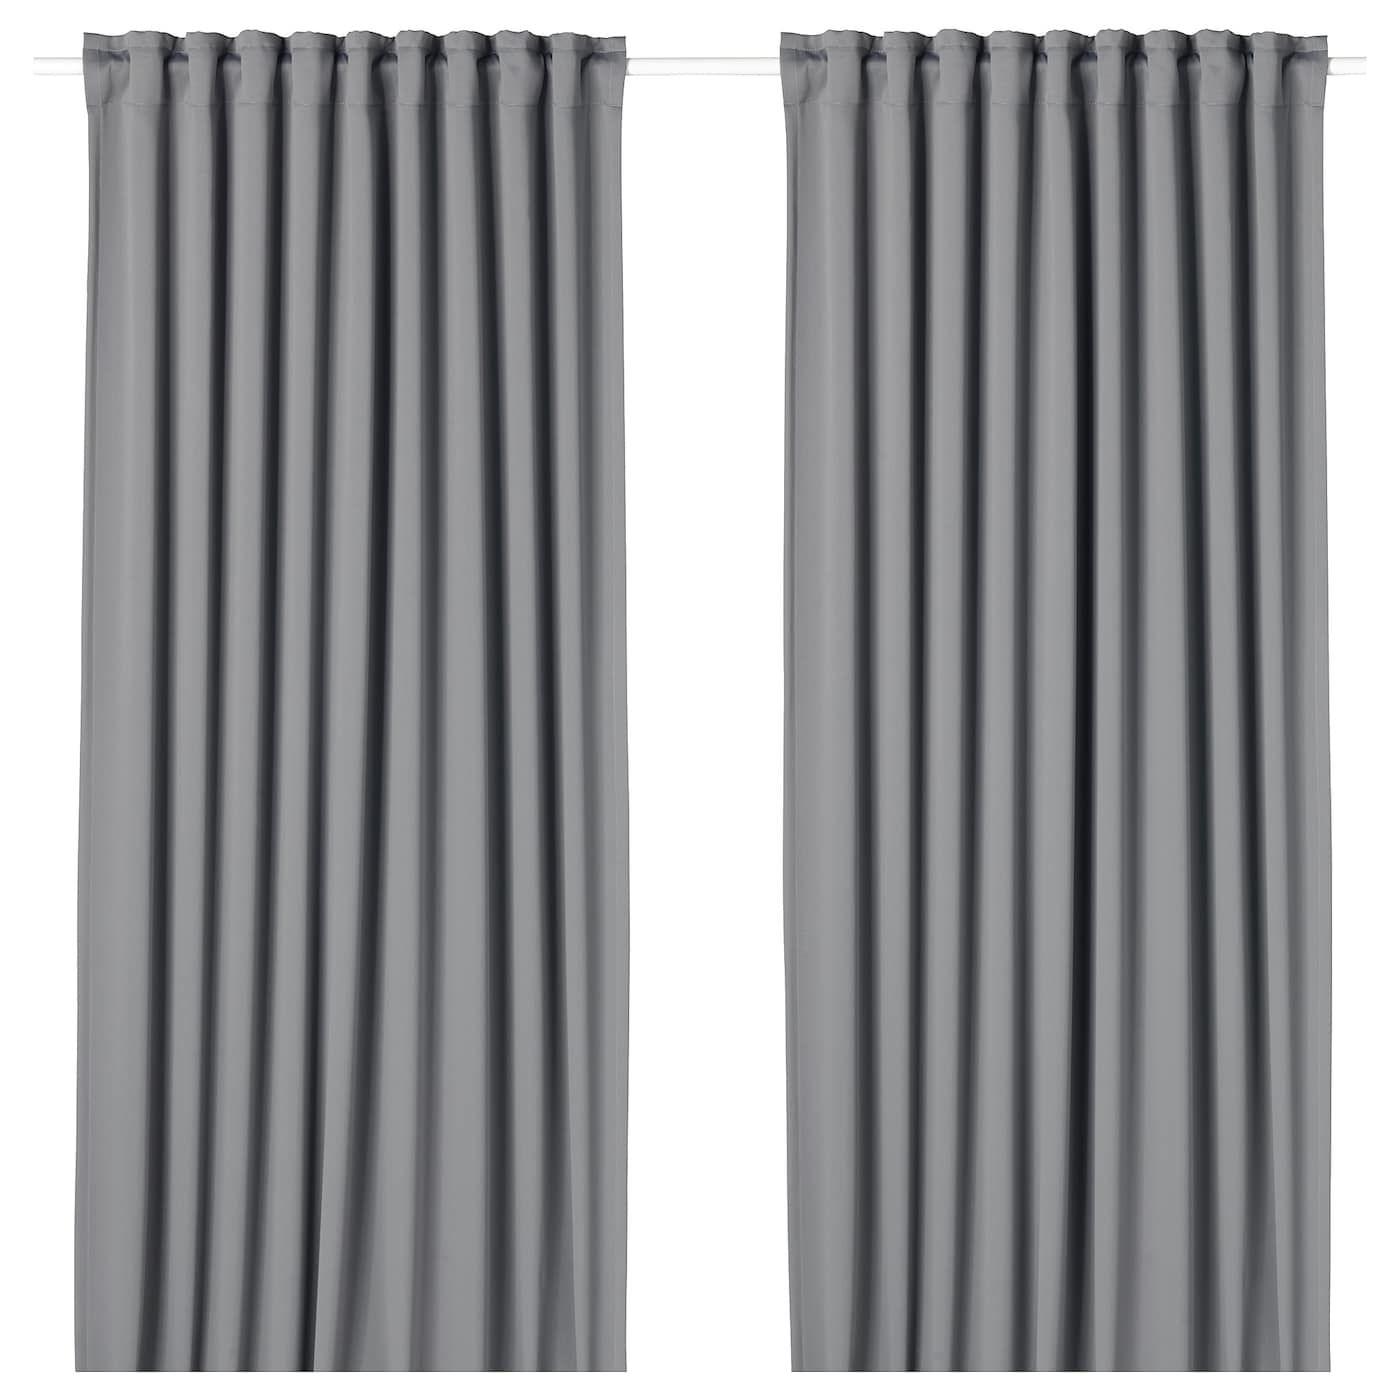 Majgull Blackout Curtains 1 Pair Gray 57x98 Block Out Curtains Blackout Curtains Double Rod Curtains